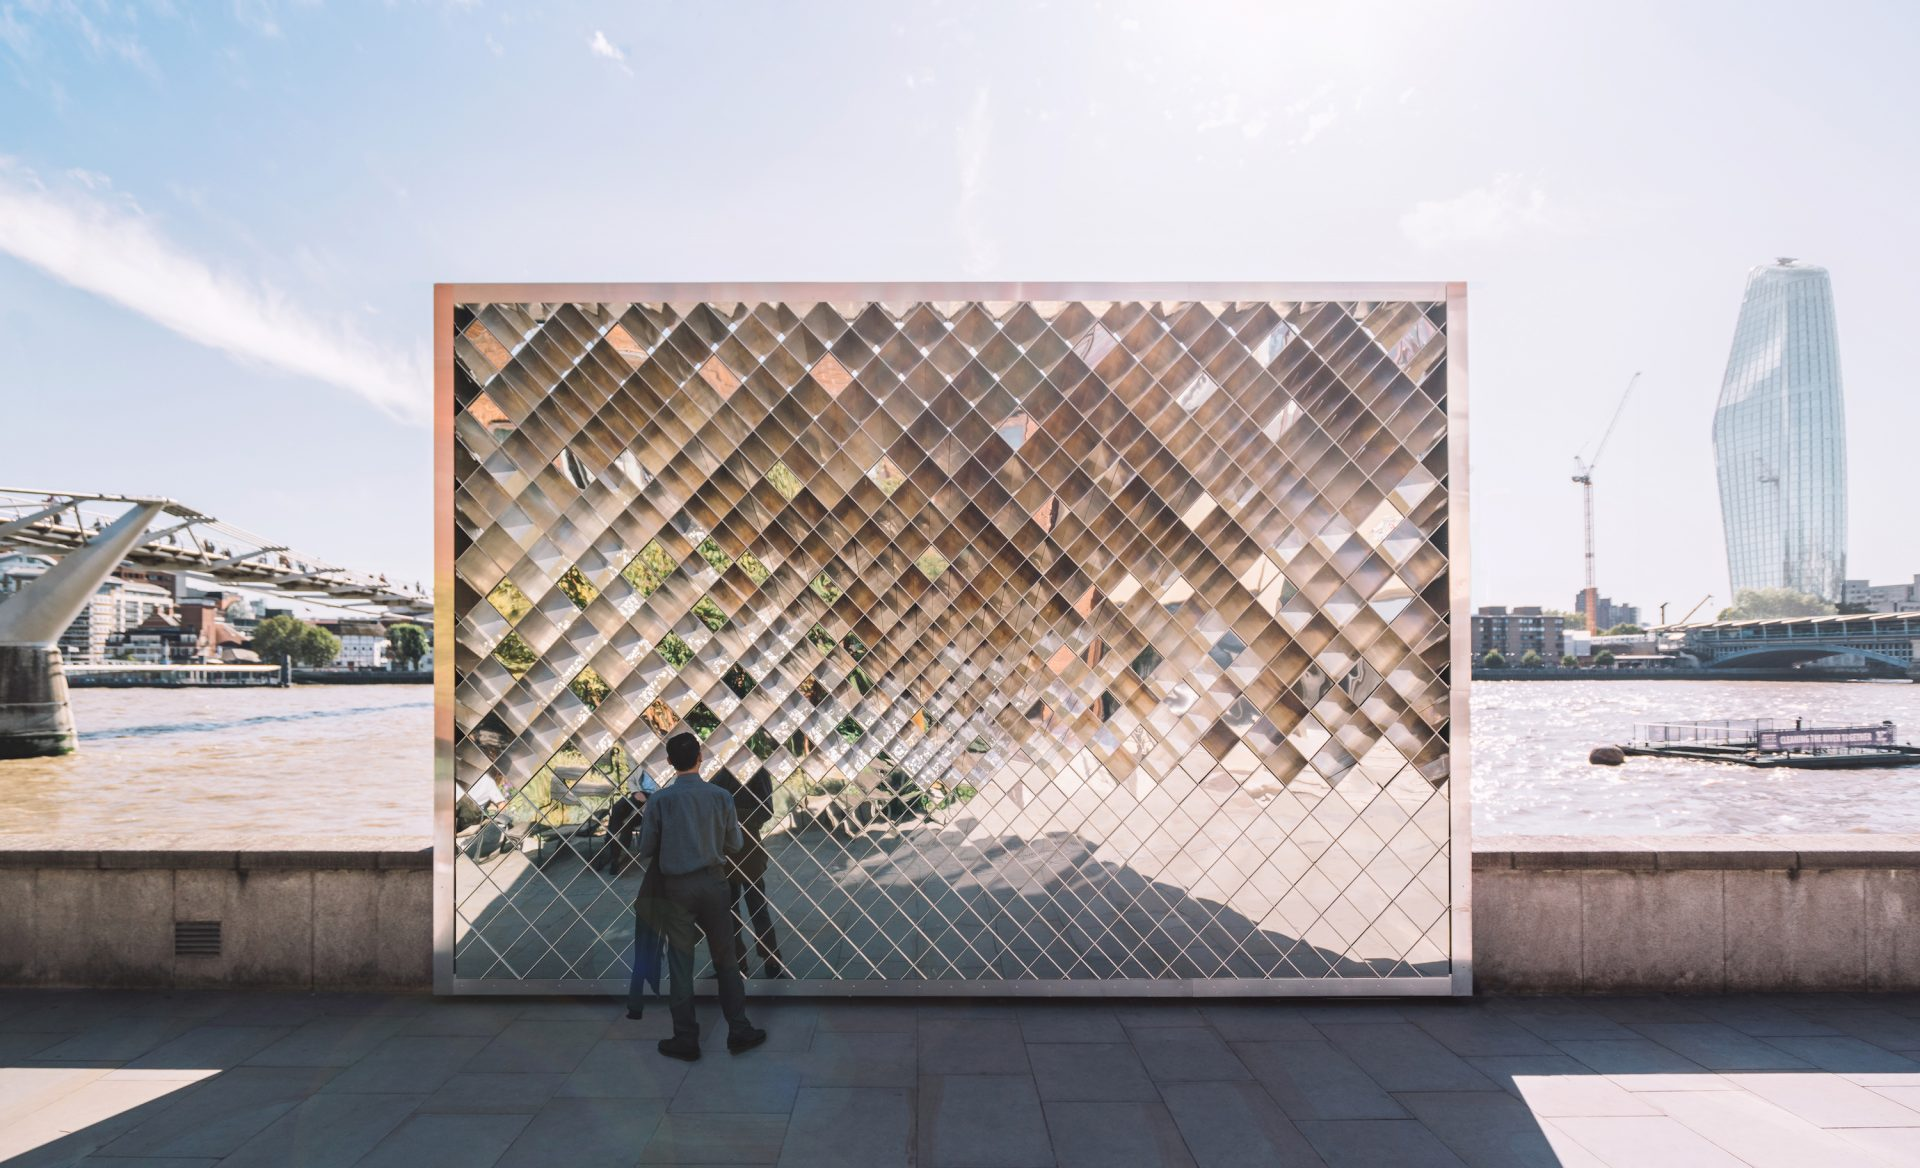 LFA and City of London Corporation reveal Wolfgang Buttress' winning 'Liminal' installation